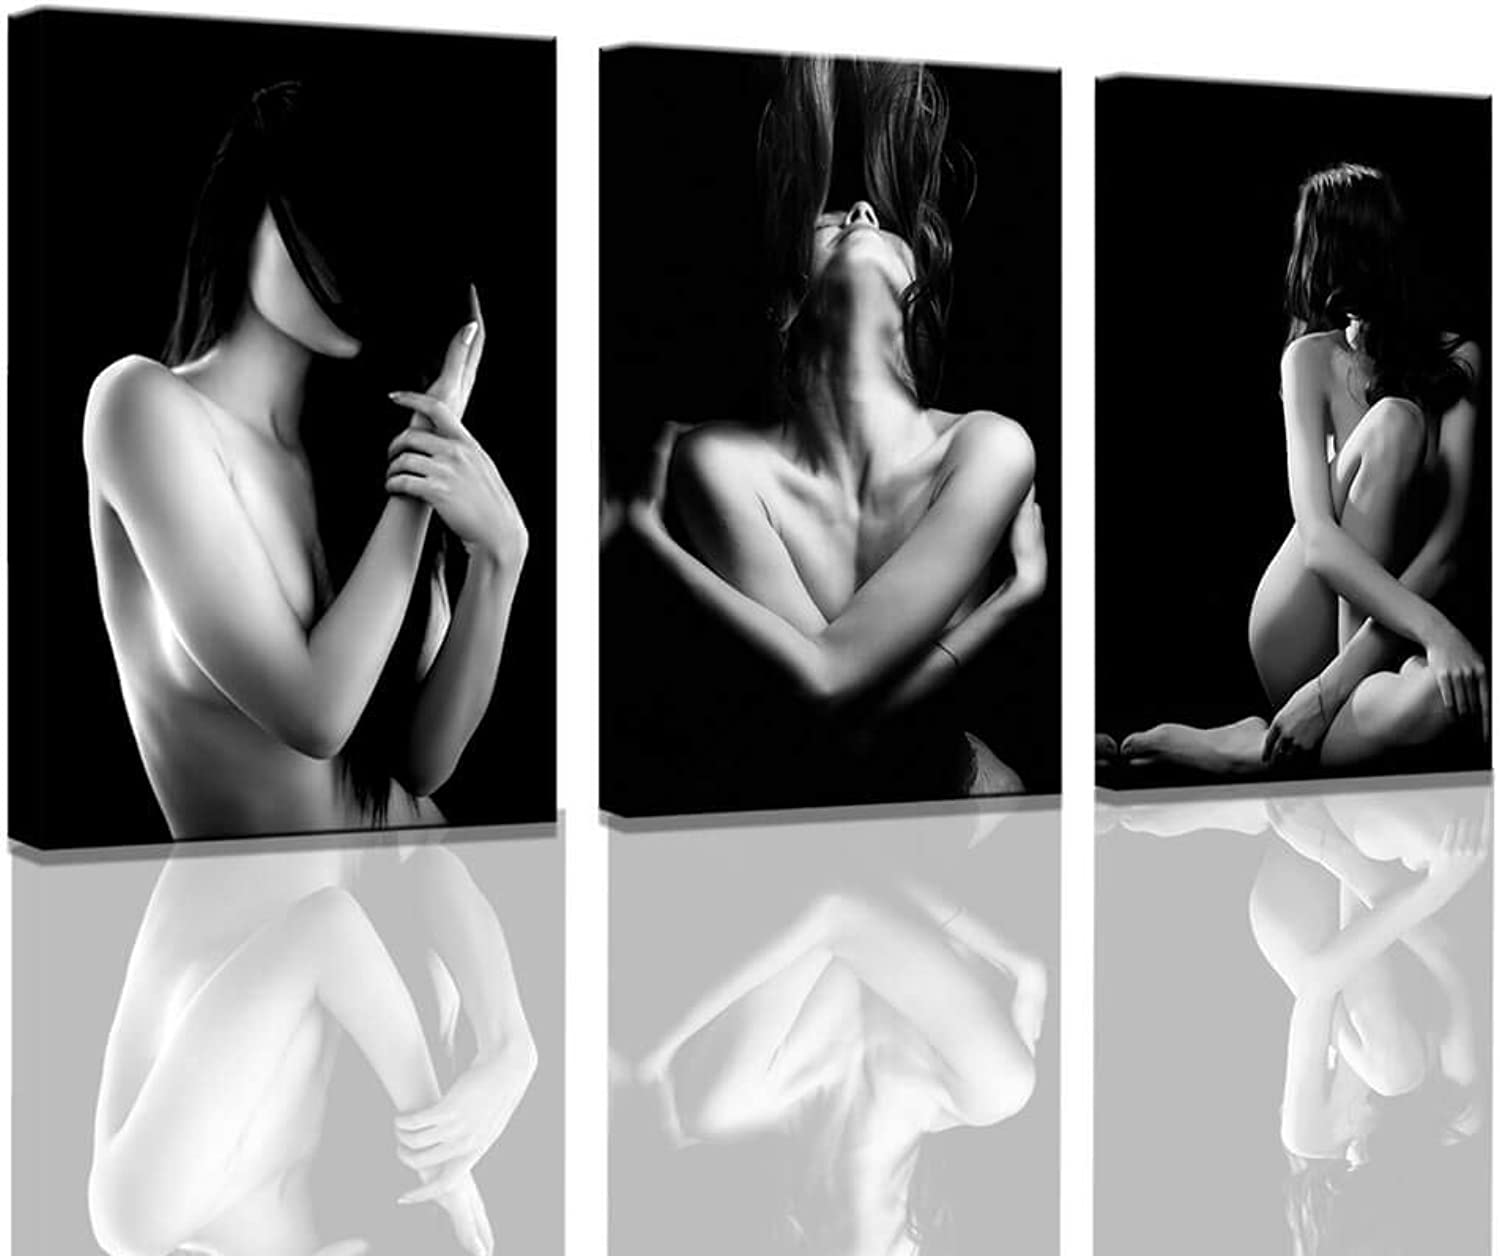 Bedroom Wall Decor Black and White Wall Decor Sexy Posters of Women Eredic Photos Canvas Prints Nude Framed Wall Art Naked Pictures for Bedroom Wall Decor Modern Artwork for Walls Ready to Hang